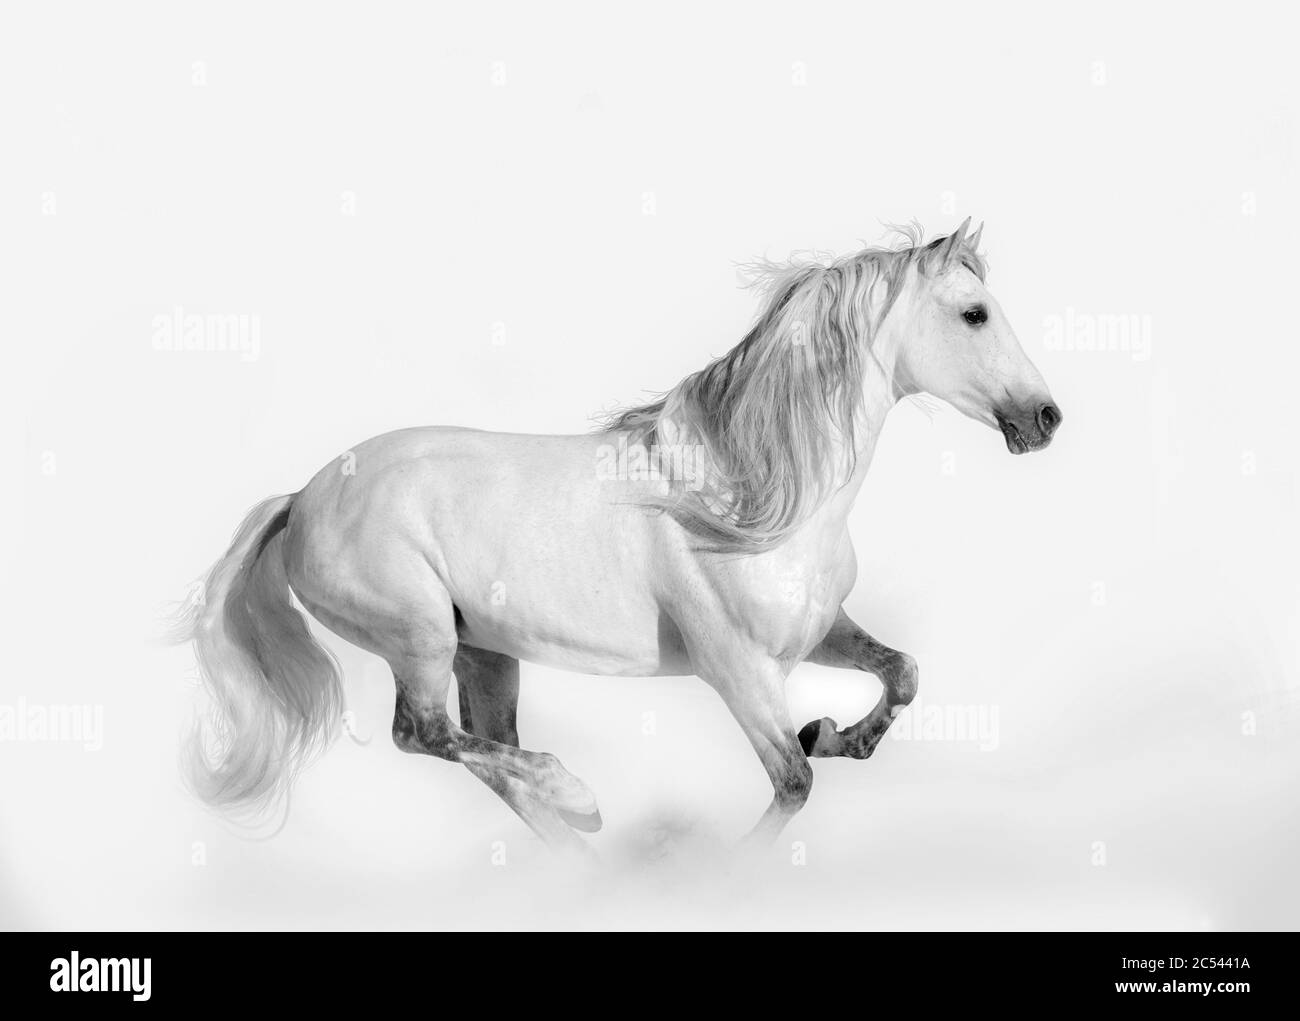 Beautiful Andalusian Stallion Shot In High Key Style Snow White Horse Running Stock Photo Alamy